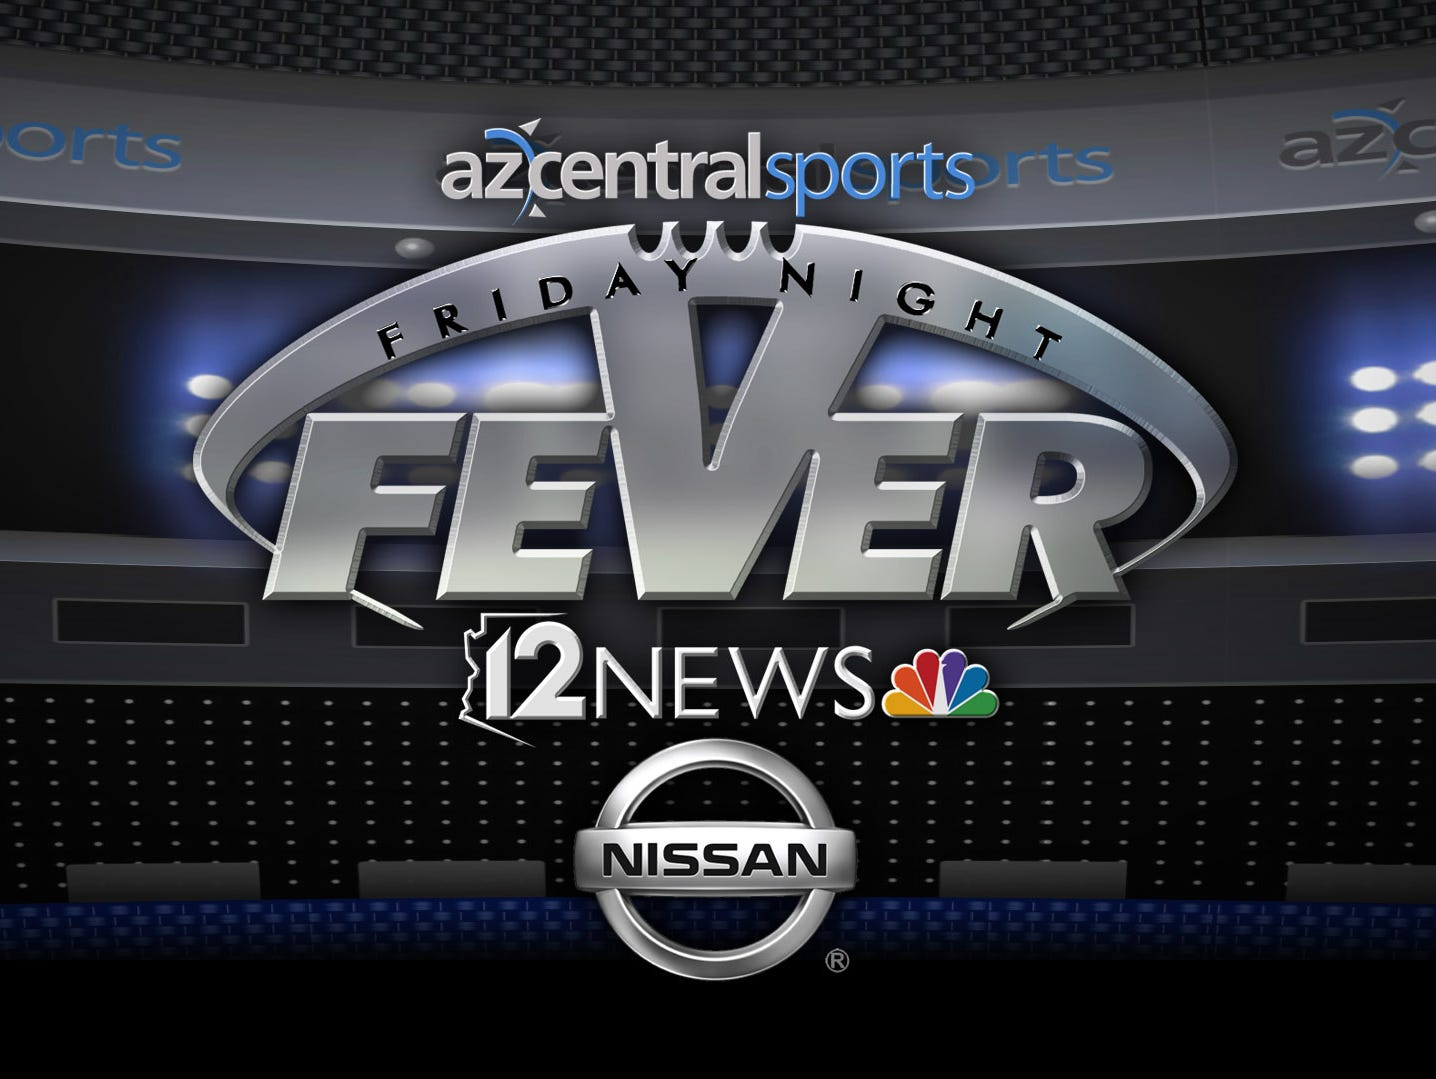 Friday Night Fever is live every week at 11:35 p.m. on Channel 12.